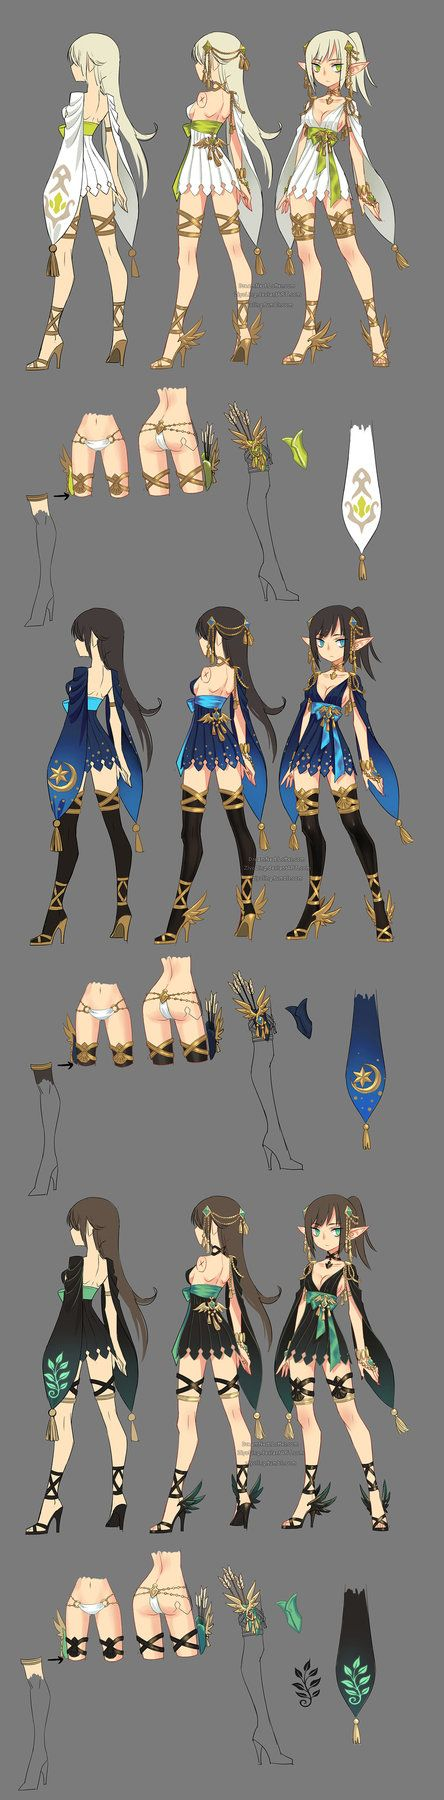 this is the myth theme costume i designed for the archer class of MMO game Dragon Nest in 2014. =) the academic class fav.me/d9inw00